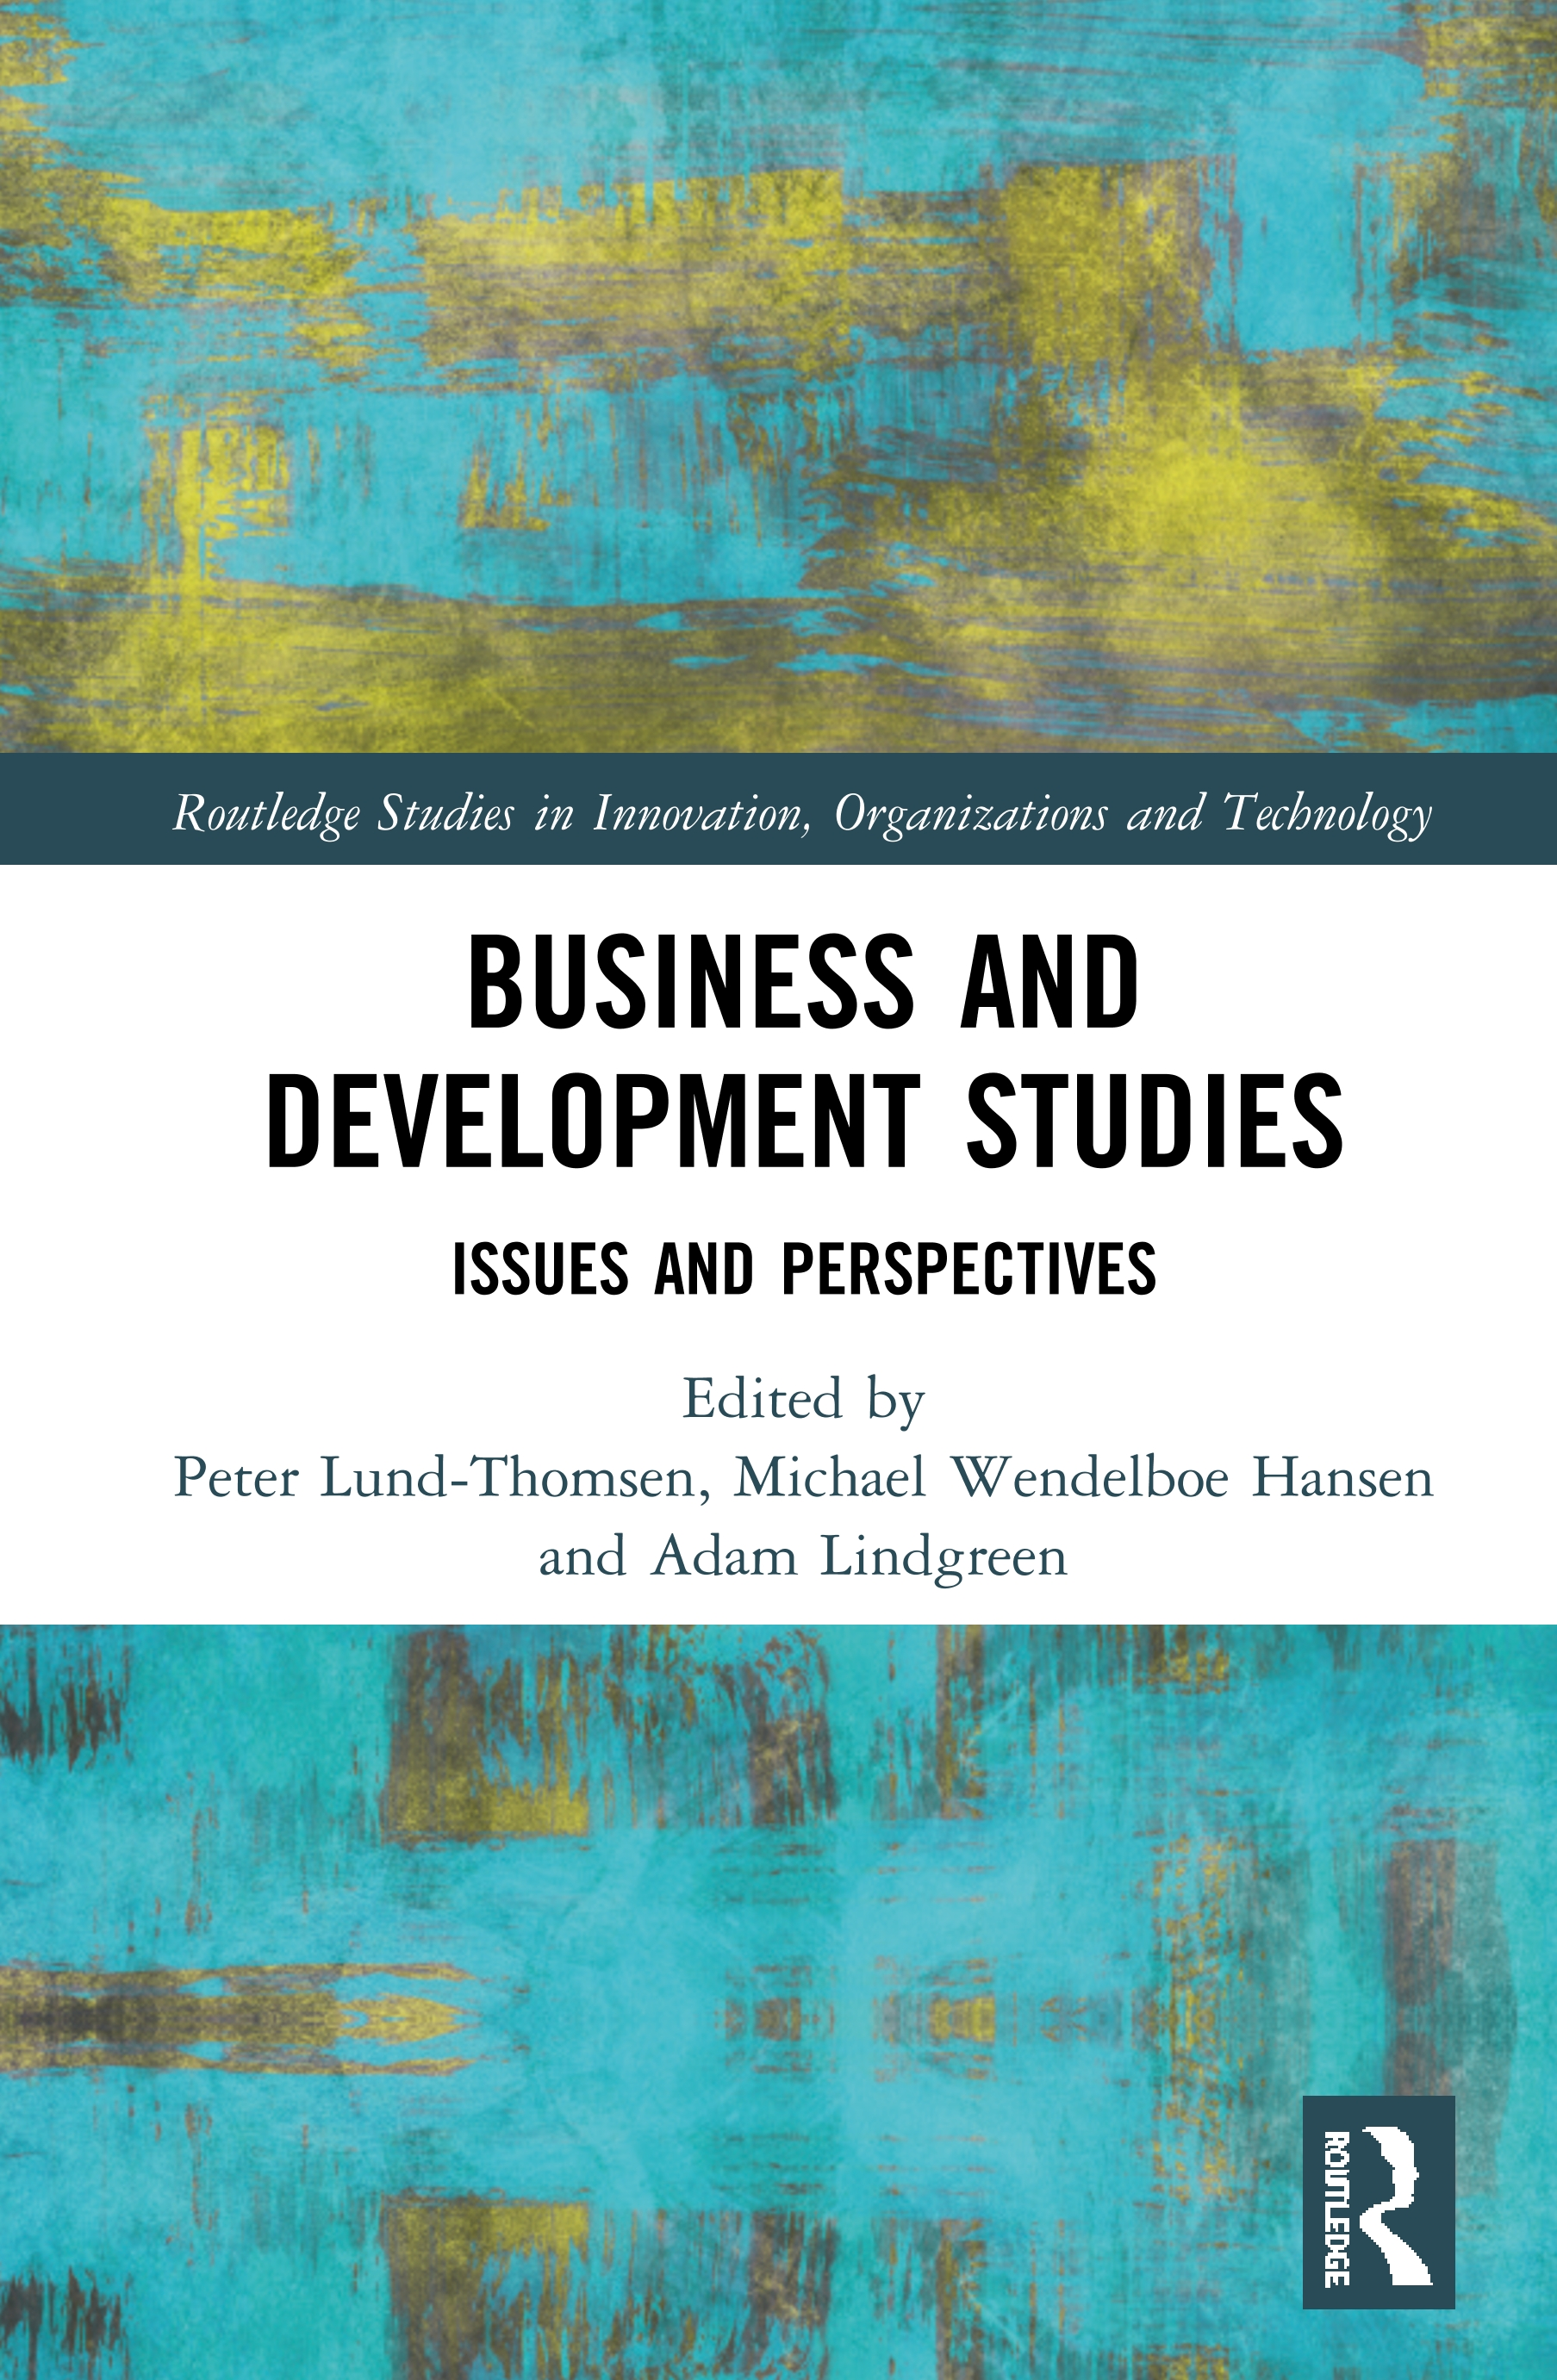 Business and Development Studies: Issues and Perspectives book cover